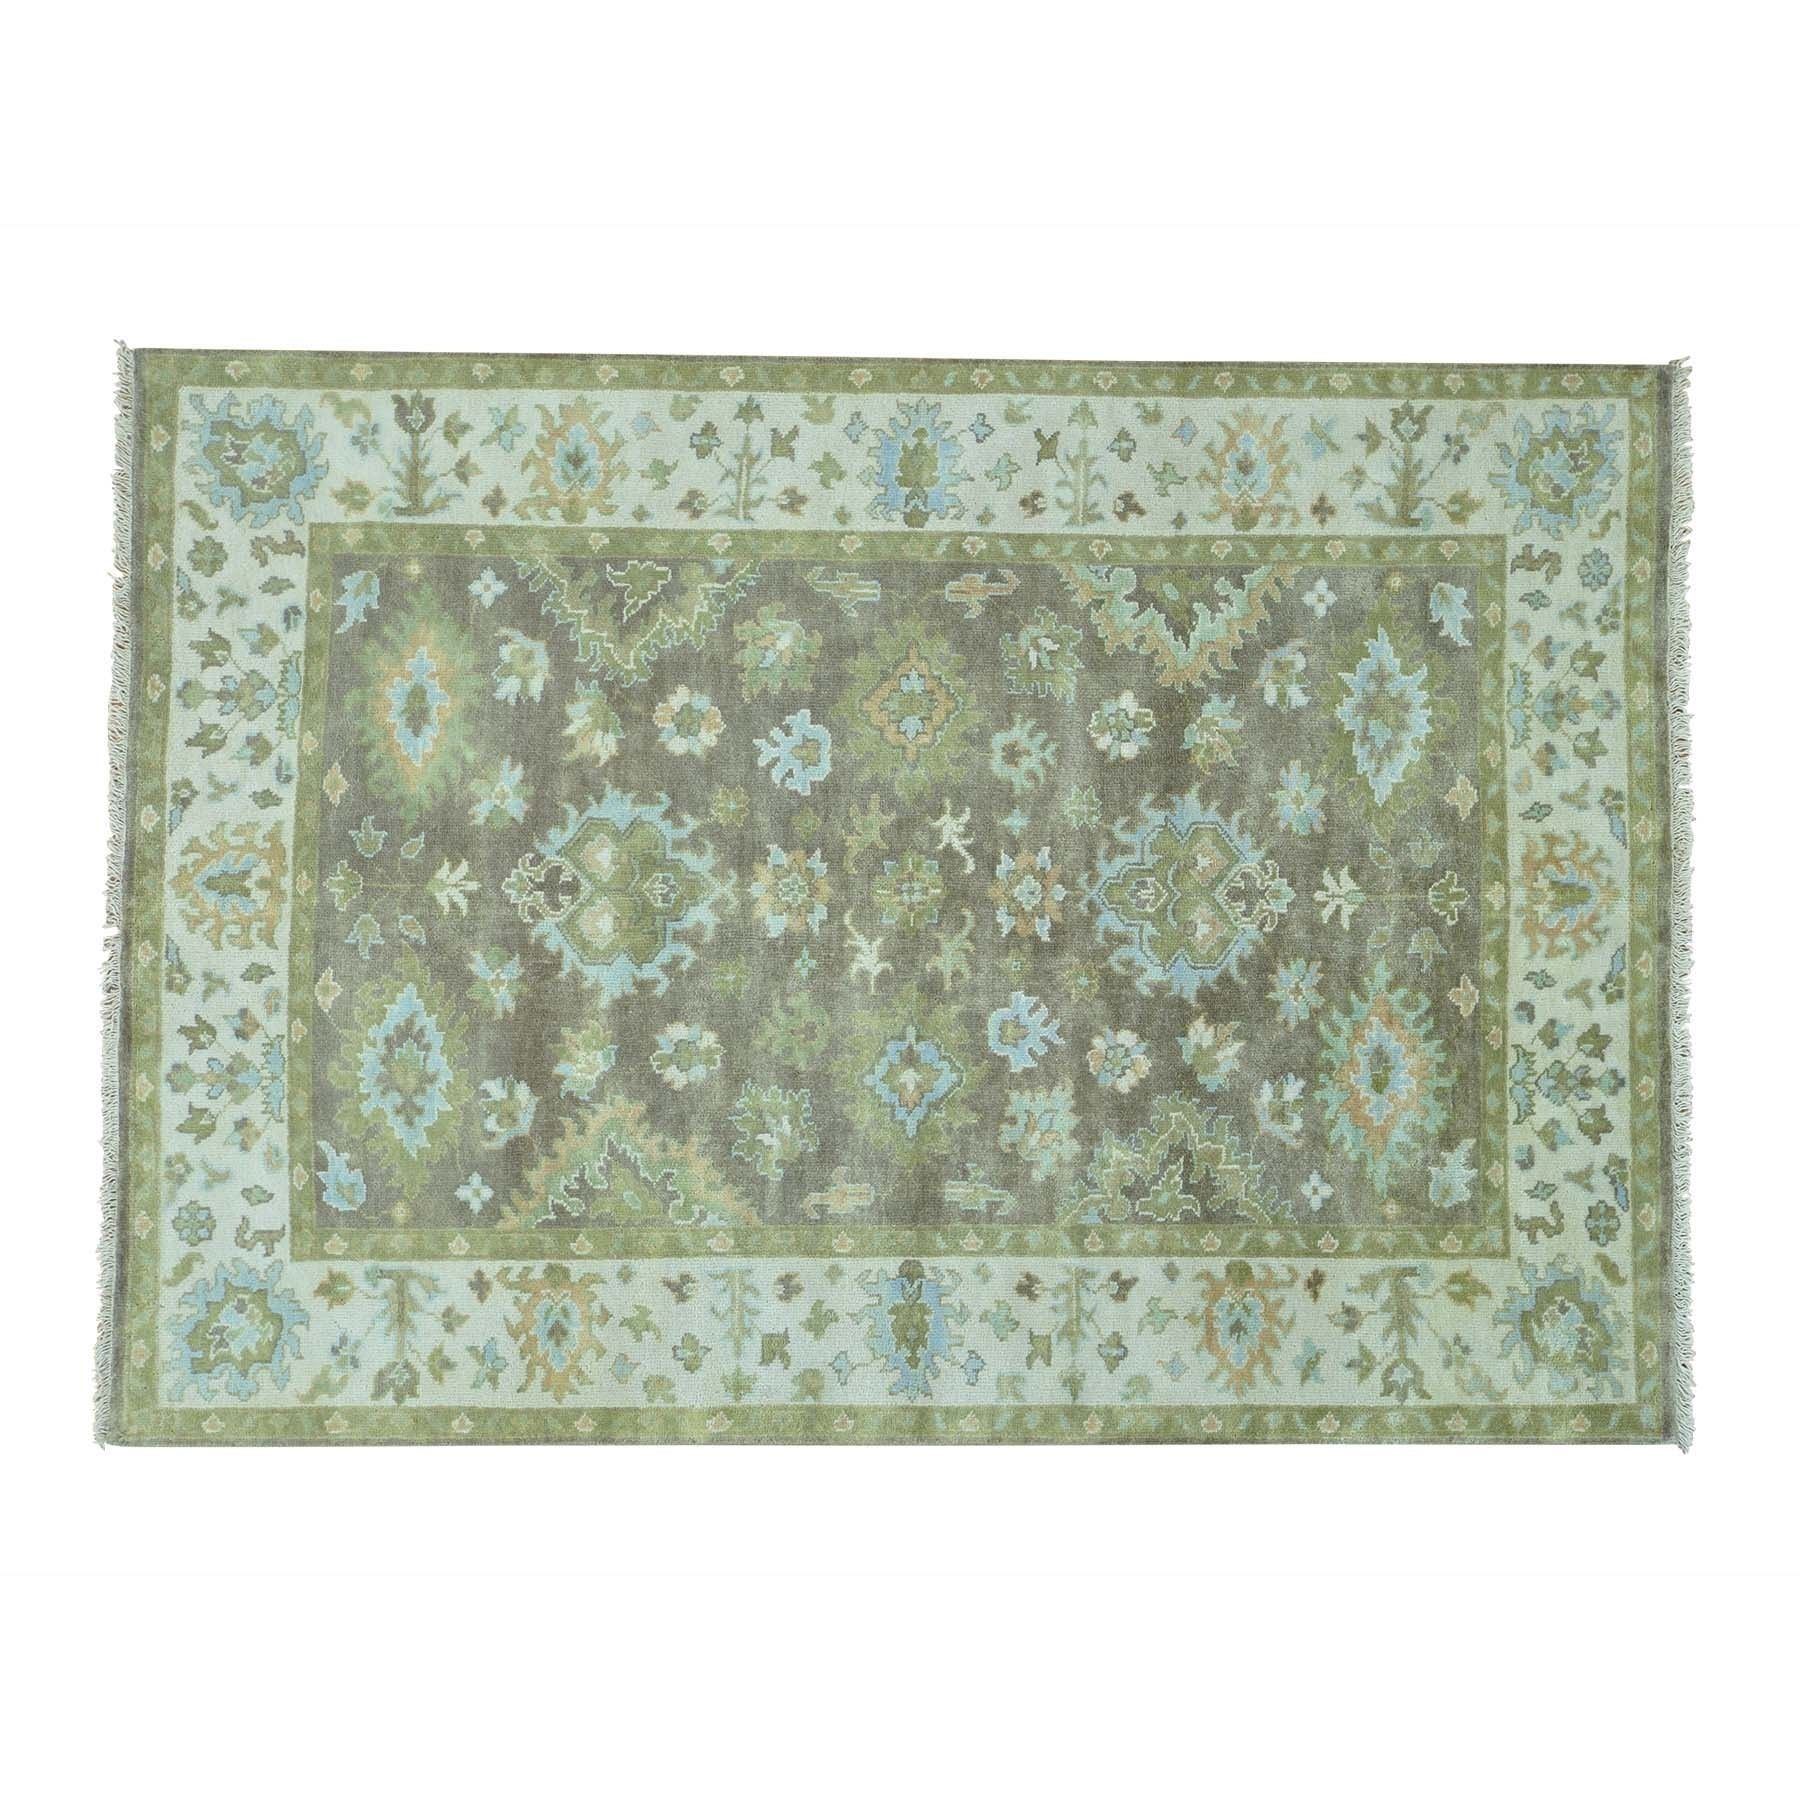 """1800getarug Oriental Washed Out Oushak Hand-knotted Pure Wool Rug (6'2 x 8'9) (Exact Size: 6'2"""" x 8'9""""), Silver, Size 6' x 9'"""